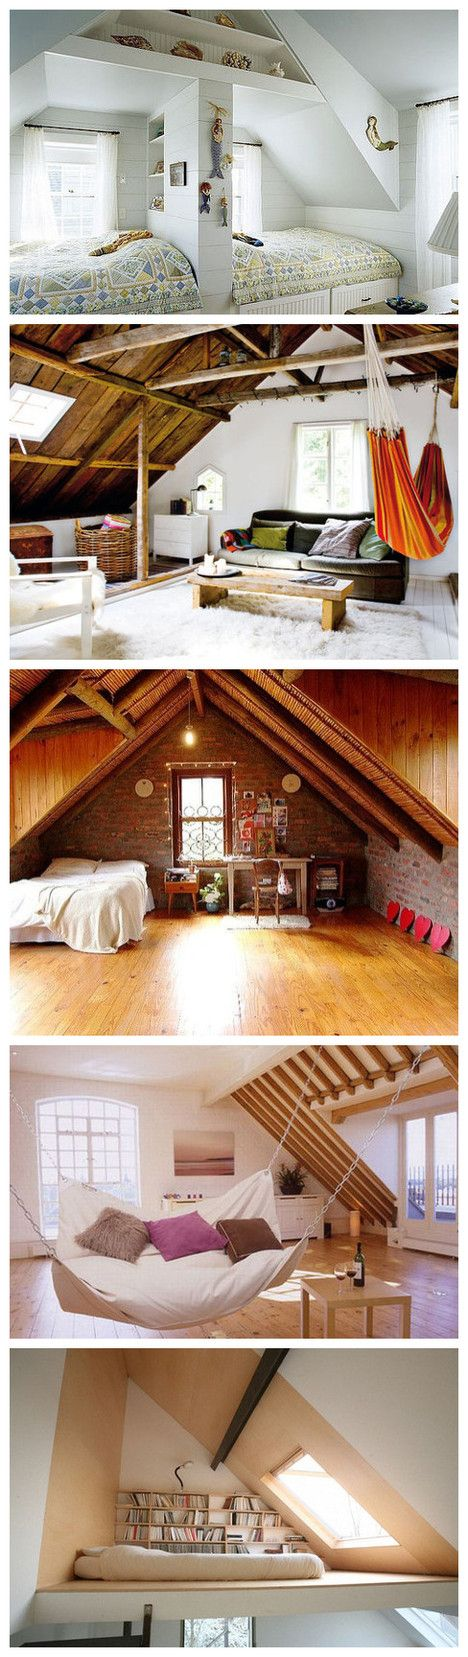 great ideas for my old bedroom at the stone house, that room is now occupied by…